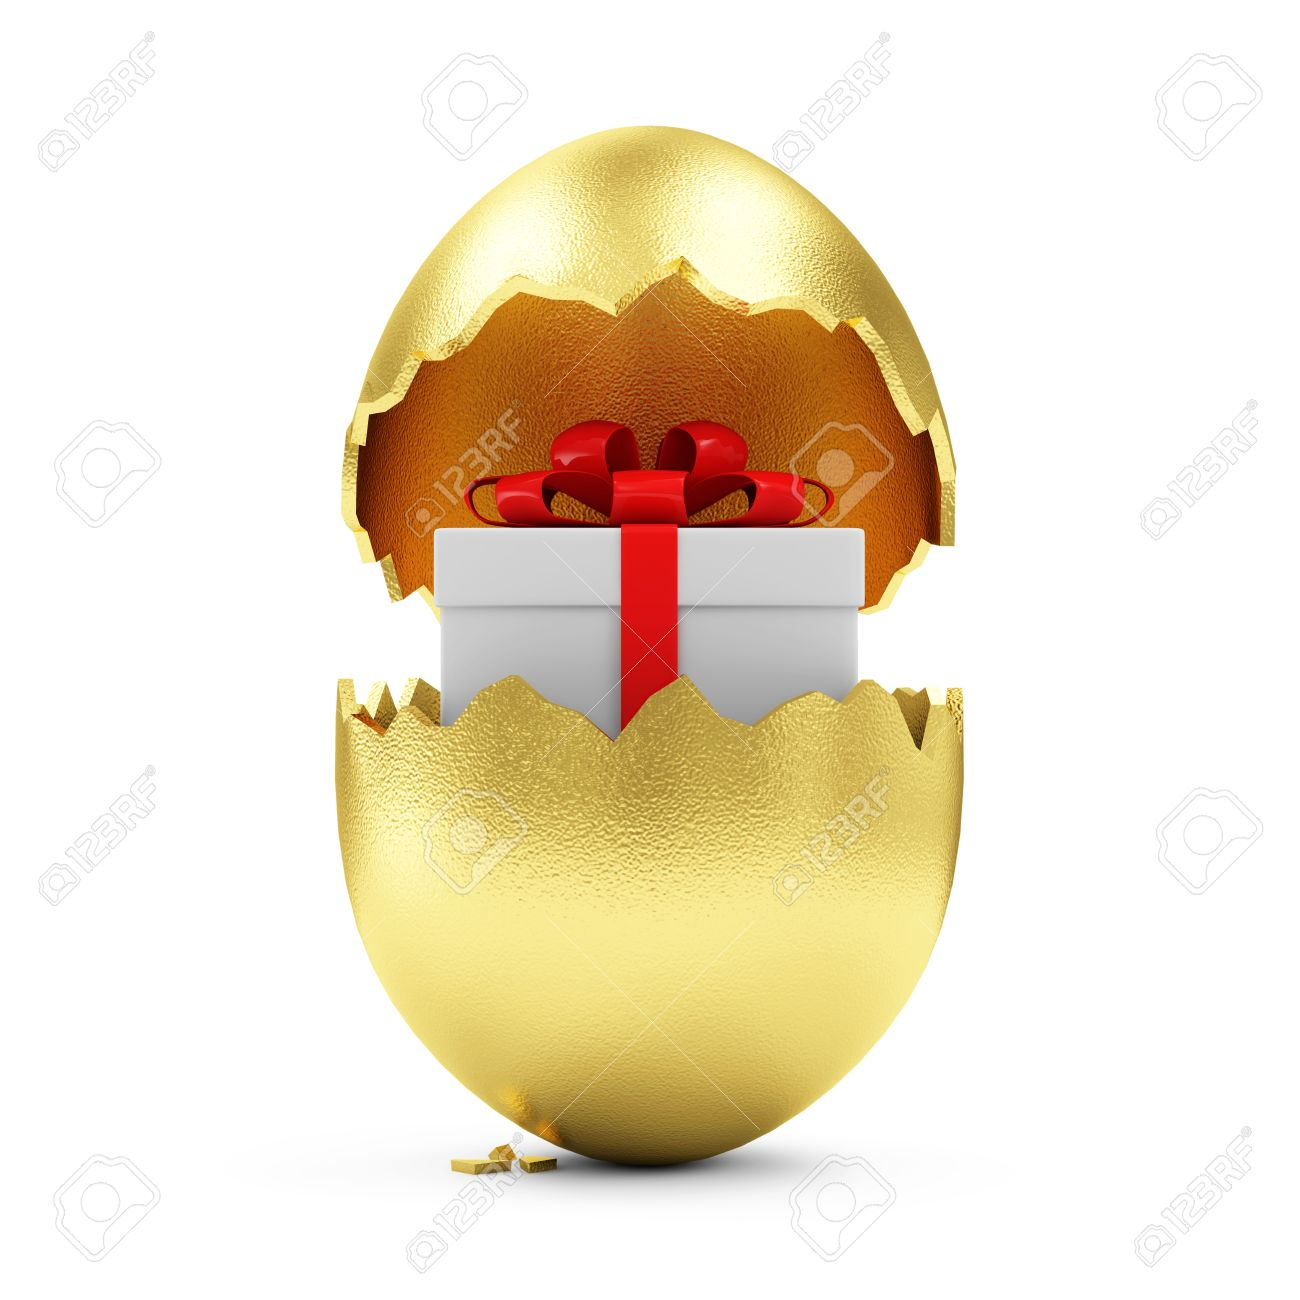 Happy easter concept big broken golden egg with gift box inside happy easter concept big broken golden egg with gift box inside isolated on white background negle Image collections